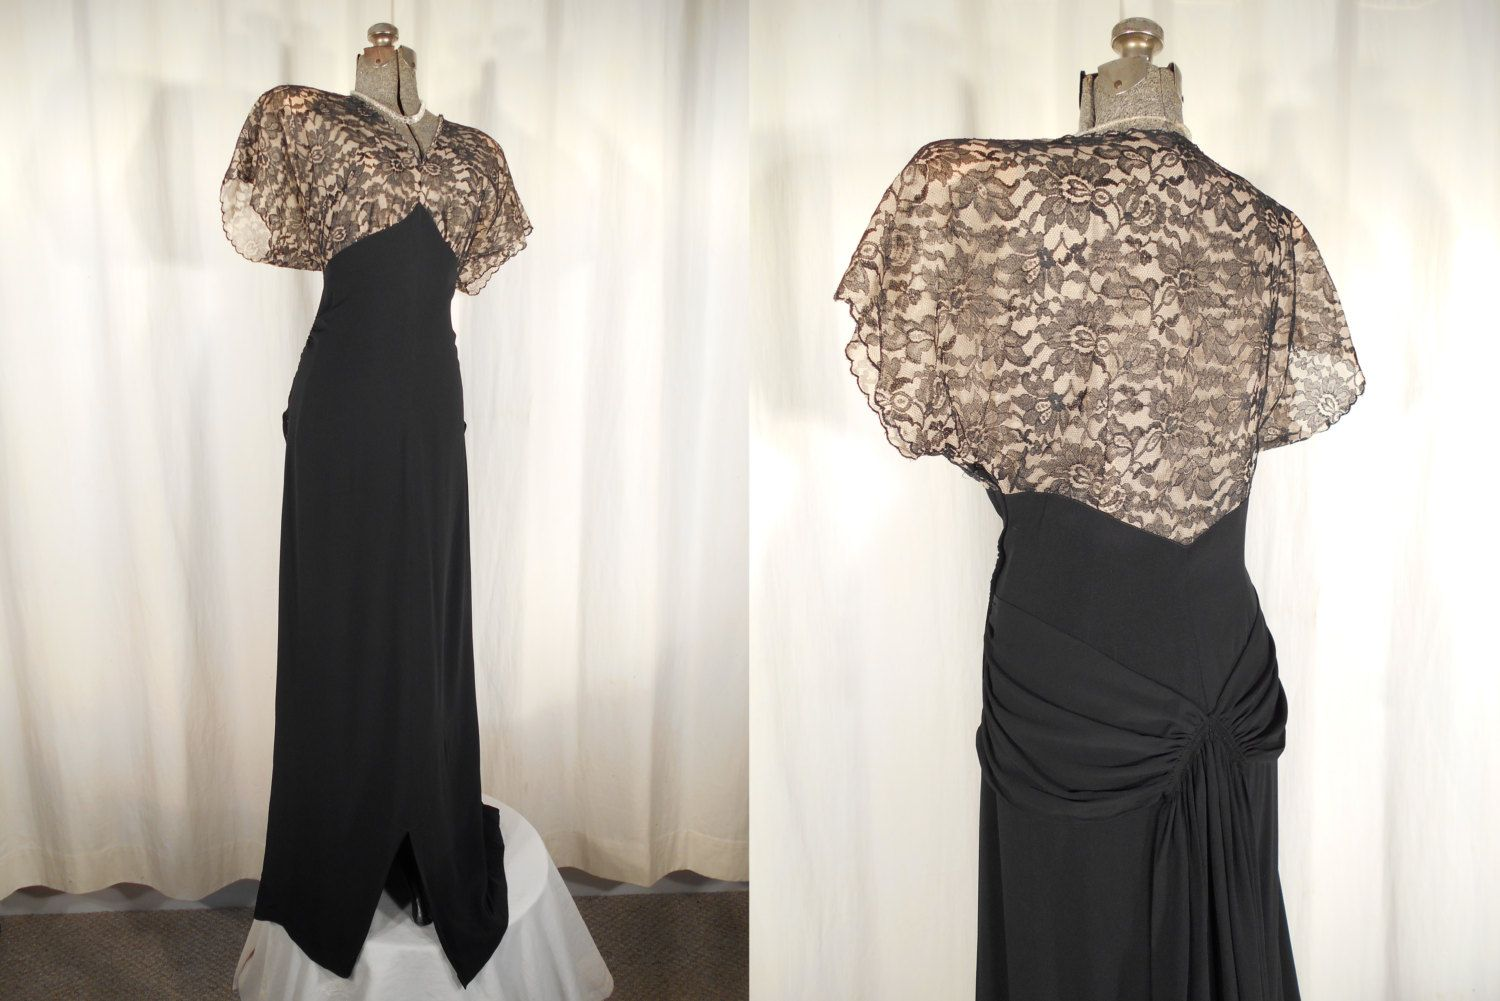 S gown s dress xl dress s gown s dress shelf